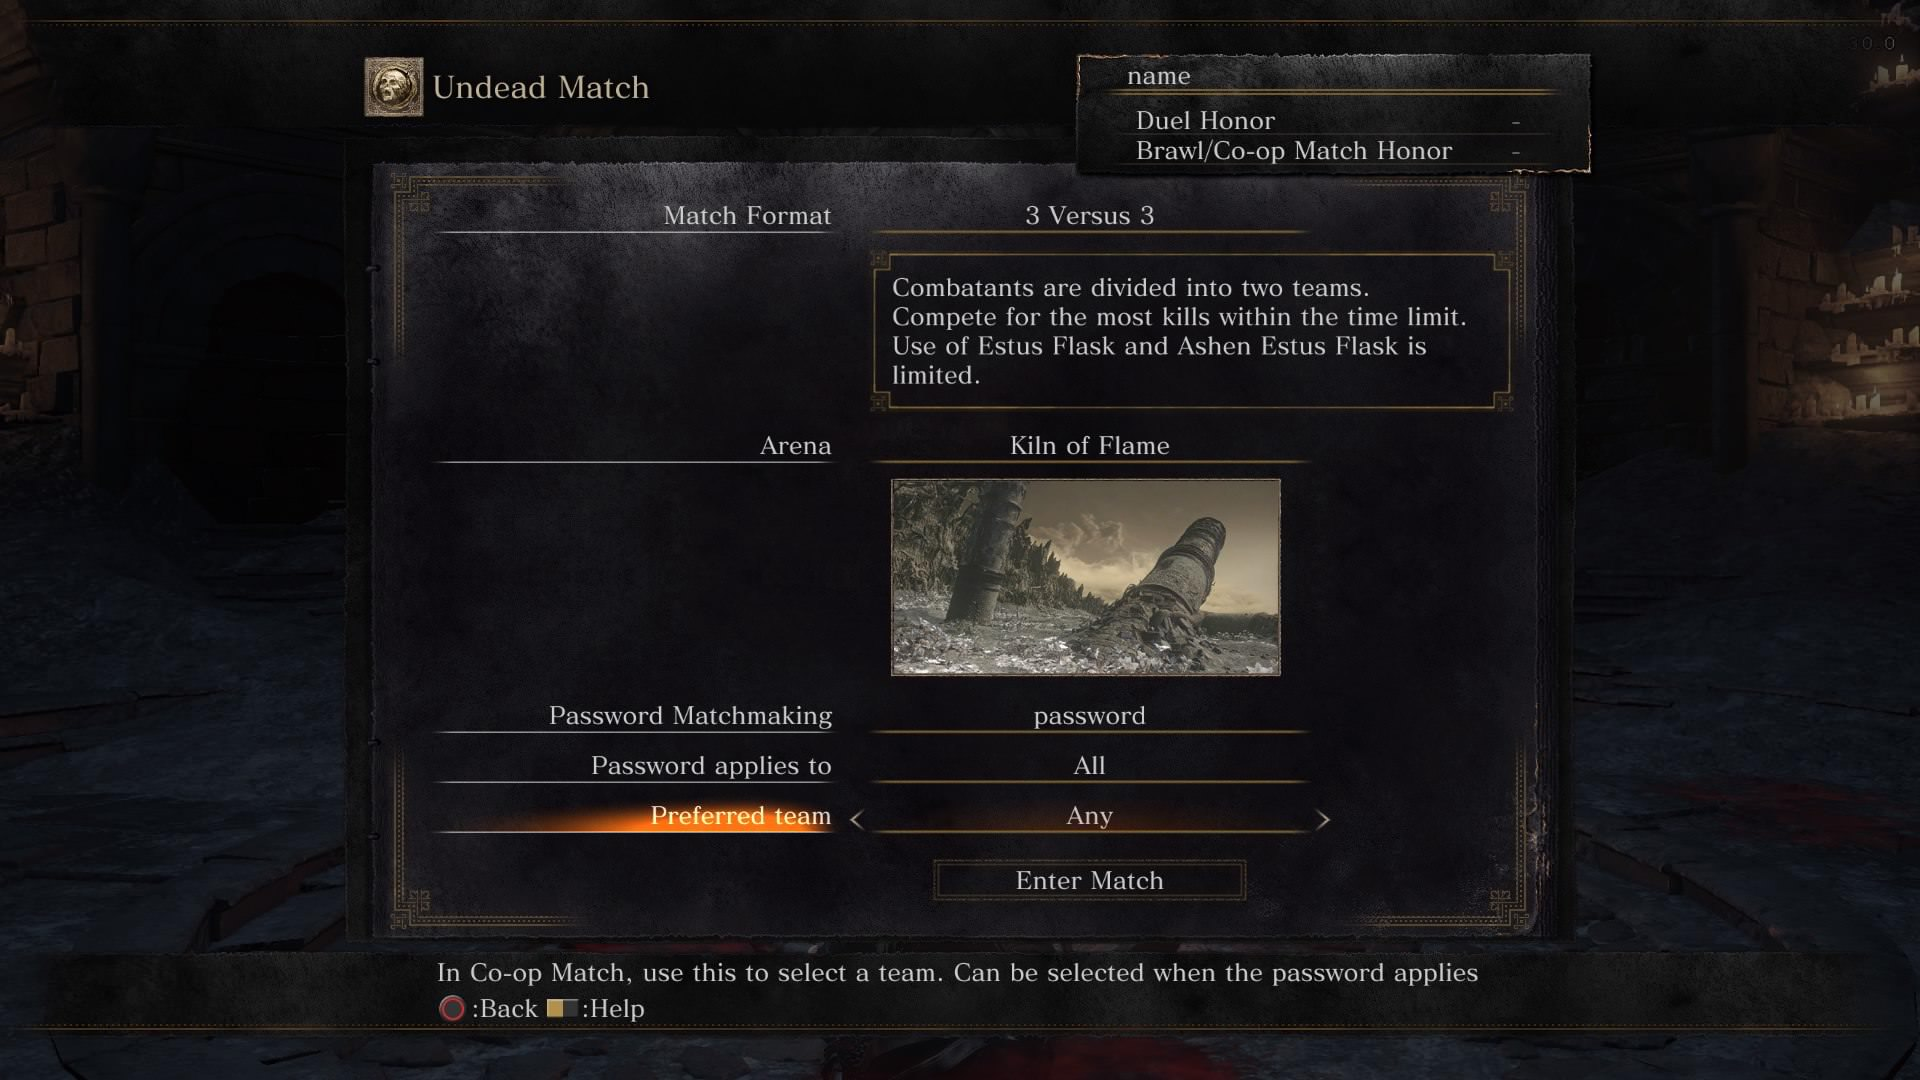 How To Matchmaking Dark Souls 3